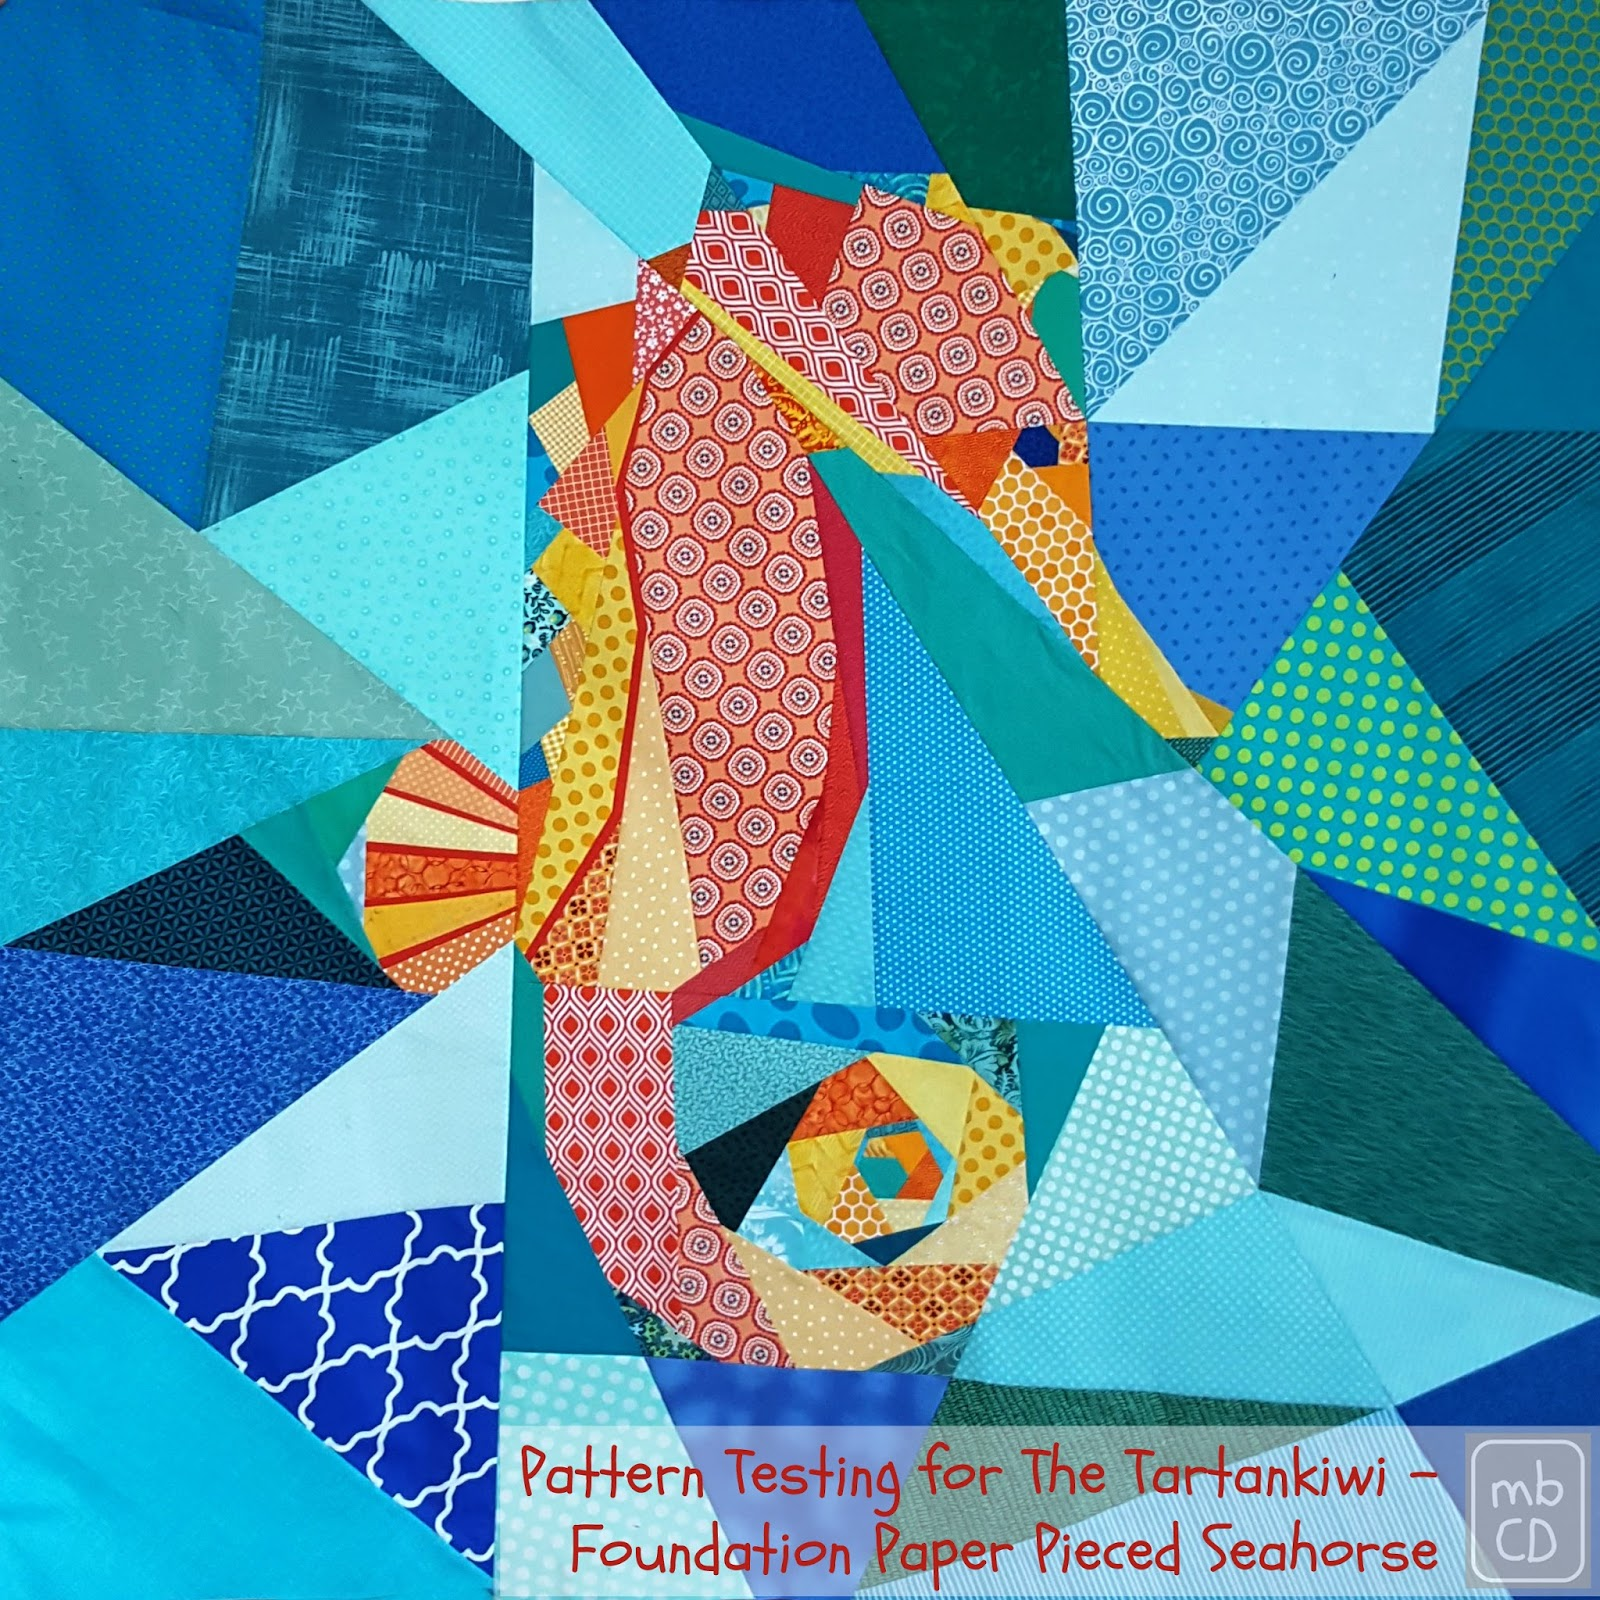 Chris dodsley mbcd a foundation paper pieced seahorse pattern a foundation paper pieced seahorse pattern testing for the tartankiwi bankloansurffo Image collections